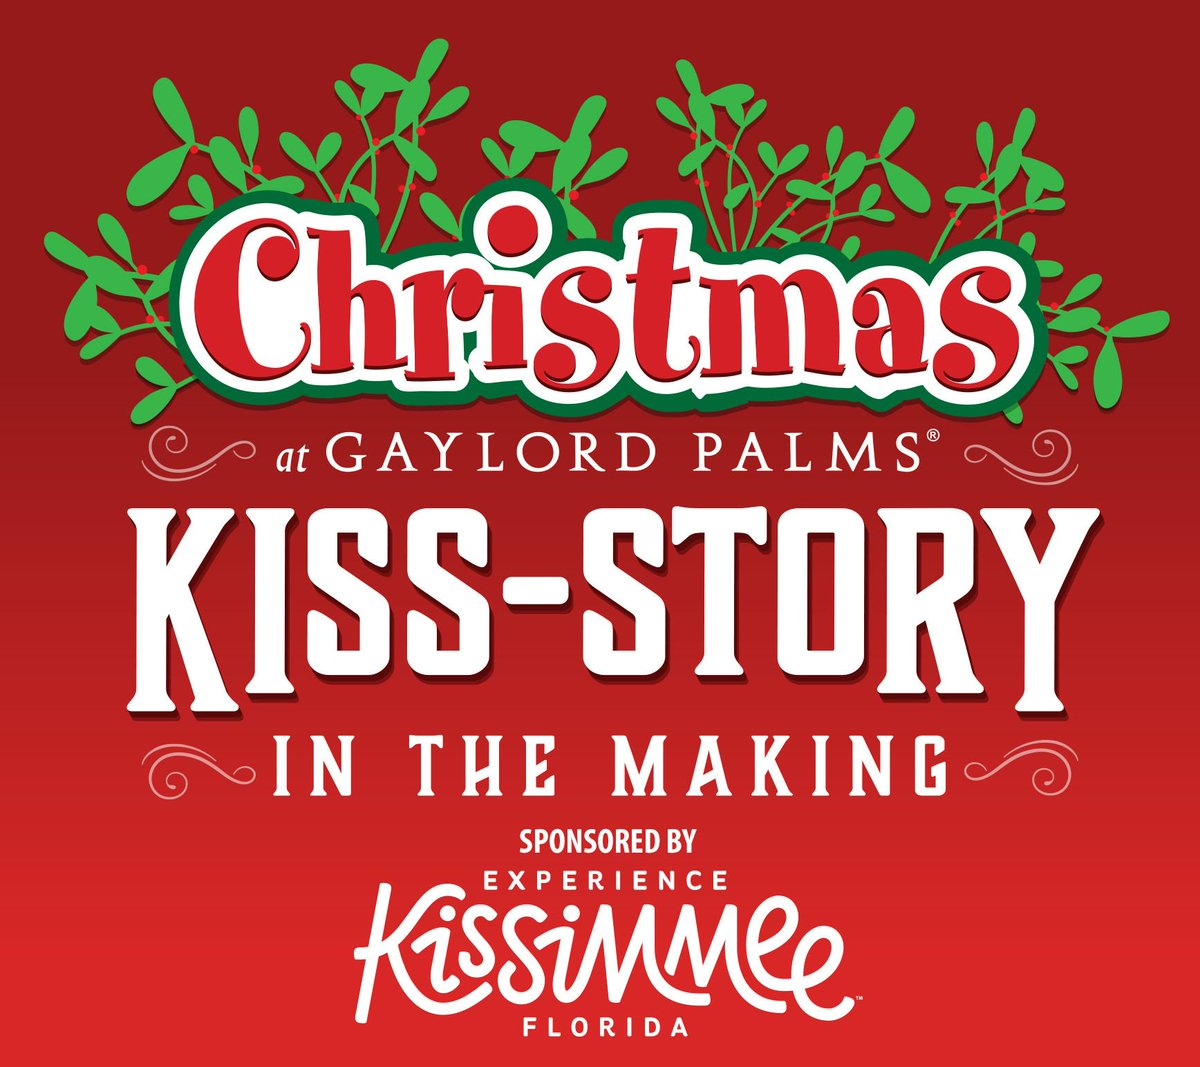 Will you participate in this 'kiss-stori...